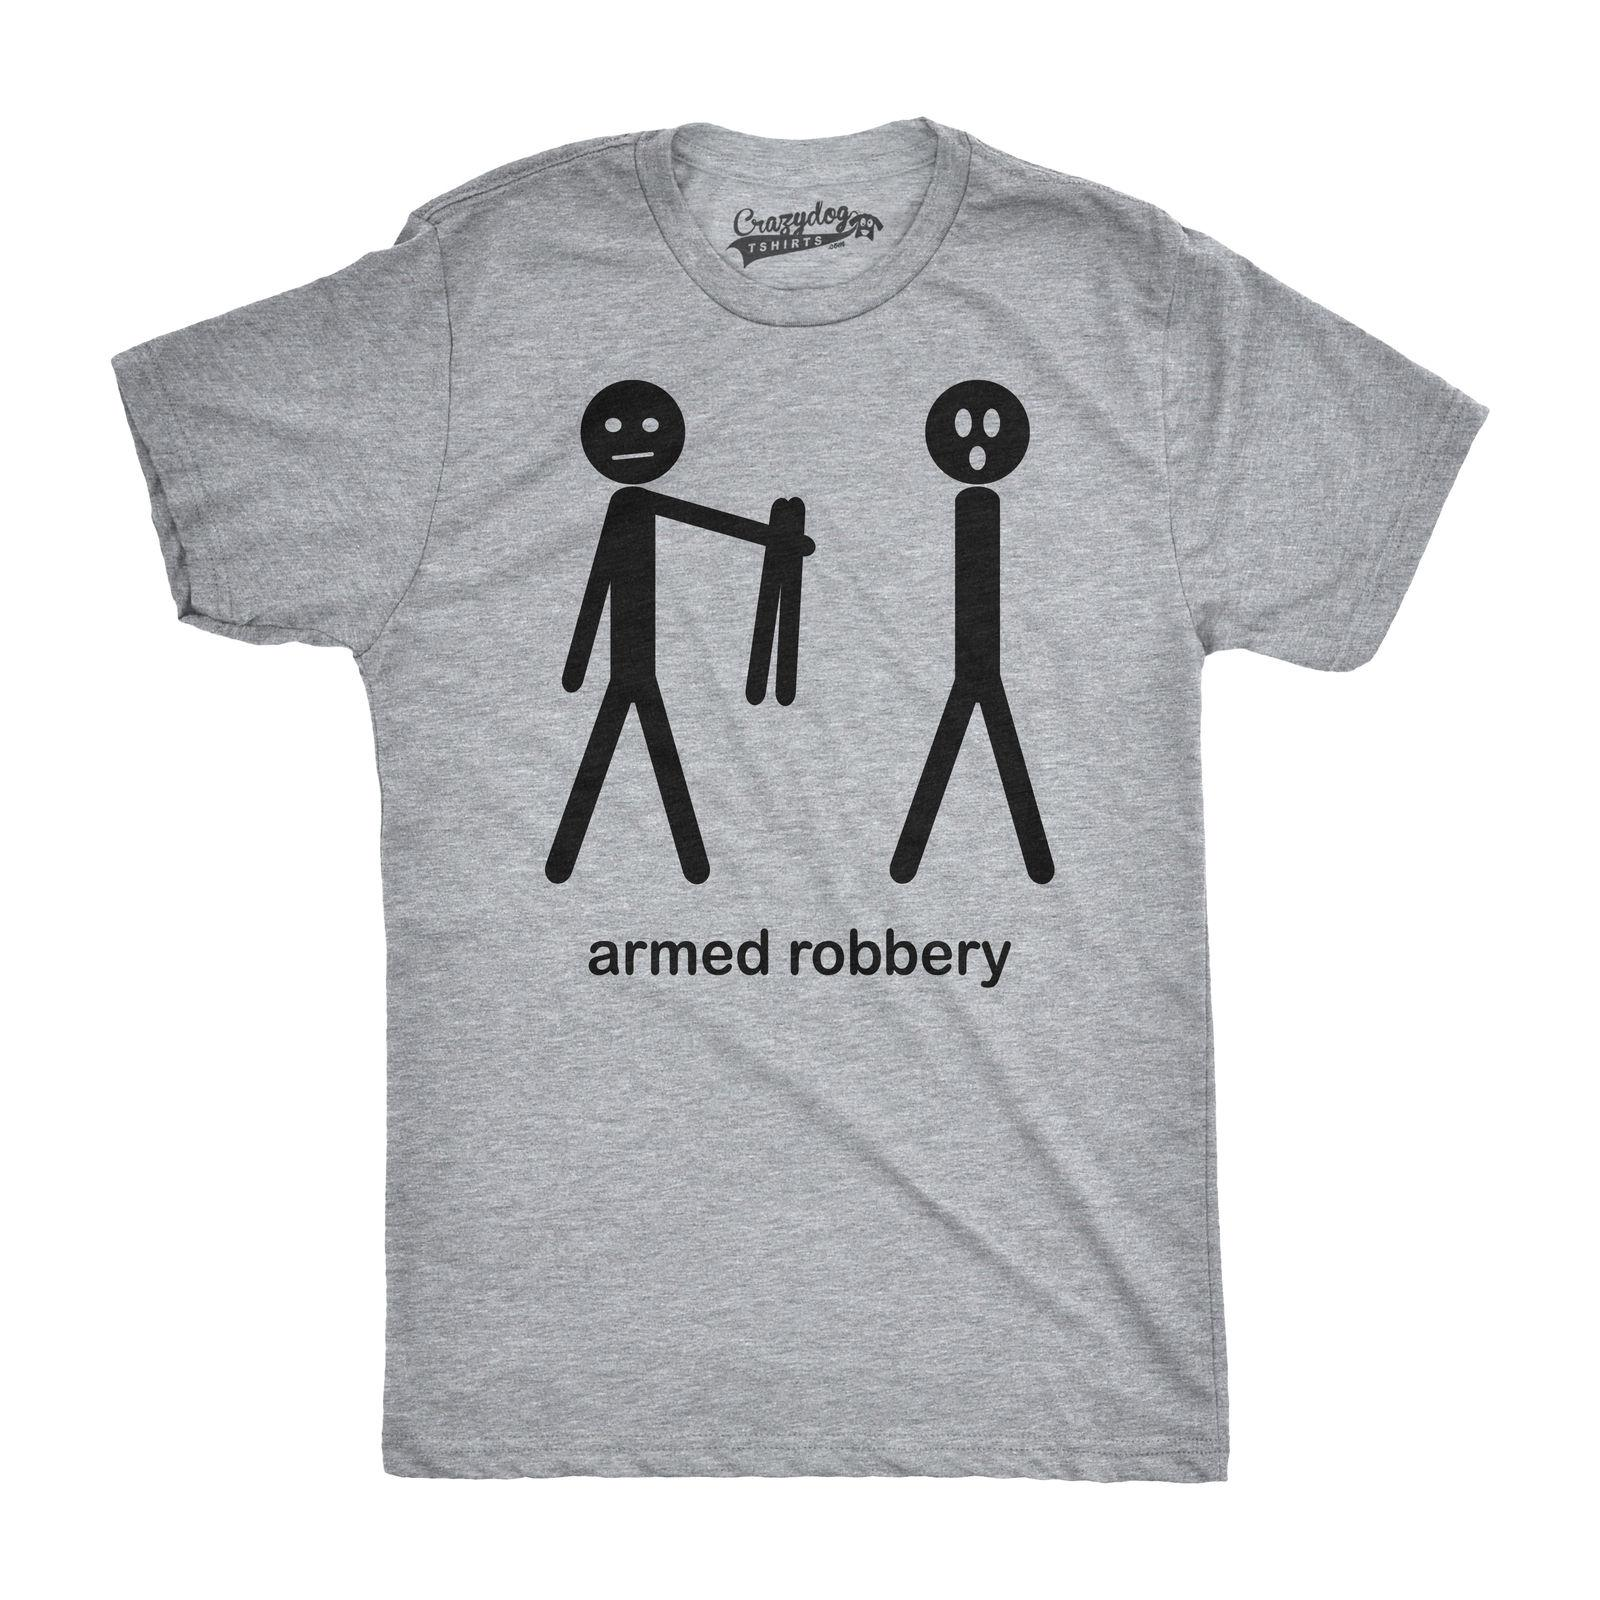 f3e6d732 Details Zu Mens Armed Robbery Funny Stick Figure Drawing Sarcastic  Hilarious T Shirt Grey Casual Funny Unisex Tee Gift White T Shirt Designs  Awesome T Shirt ...